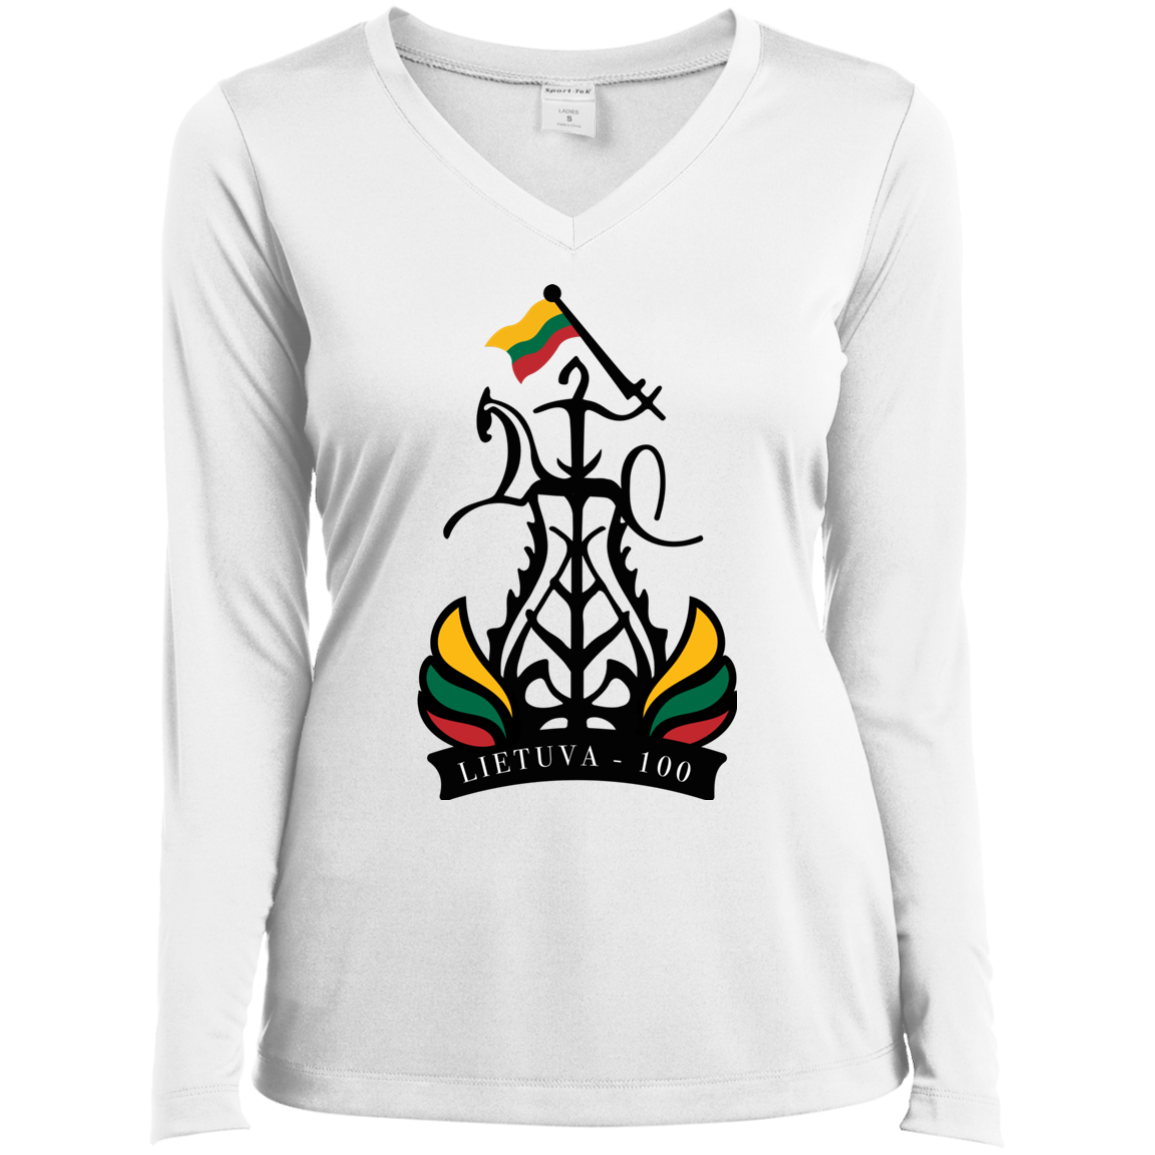 Restored 100 (Lietuva 100) -- Moterims Long Sleeve Performance V-Neck